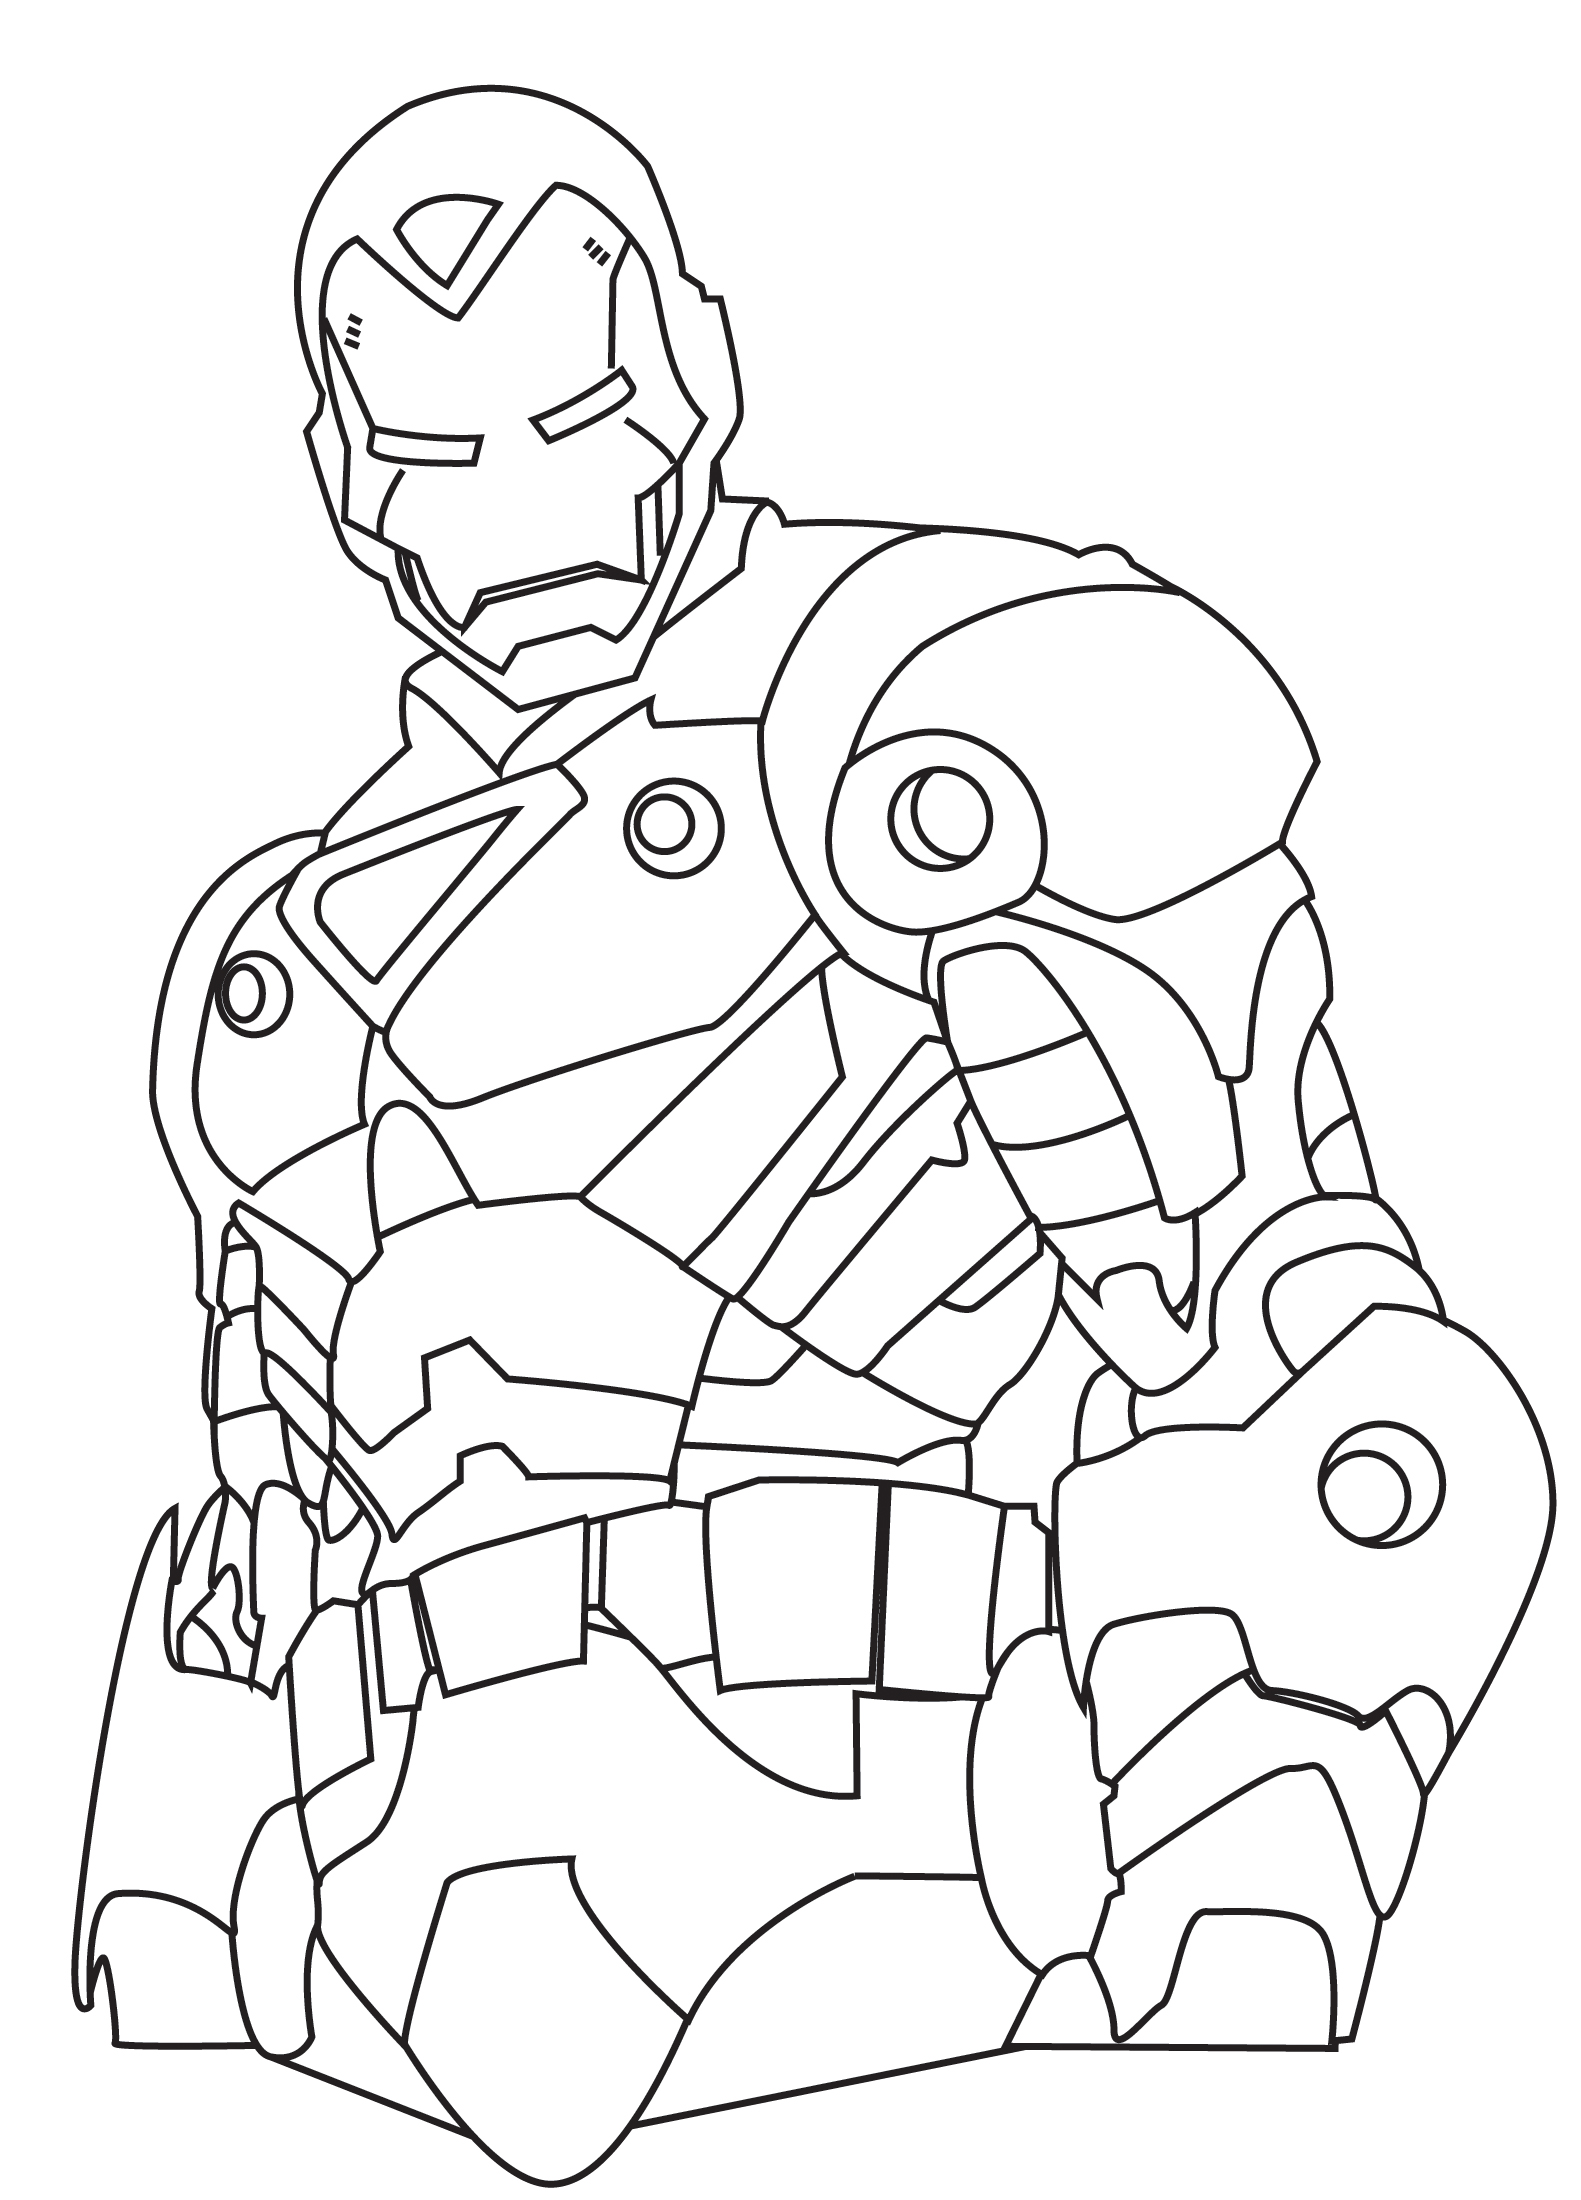 Ironman coloring sheet contest by graffd02 on deviantart for Ironman coloring page